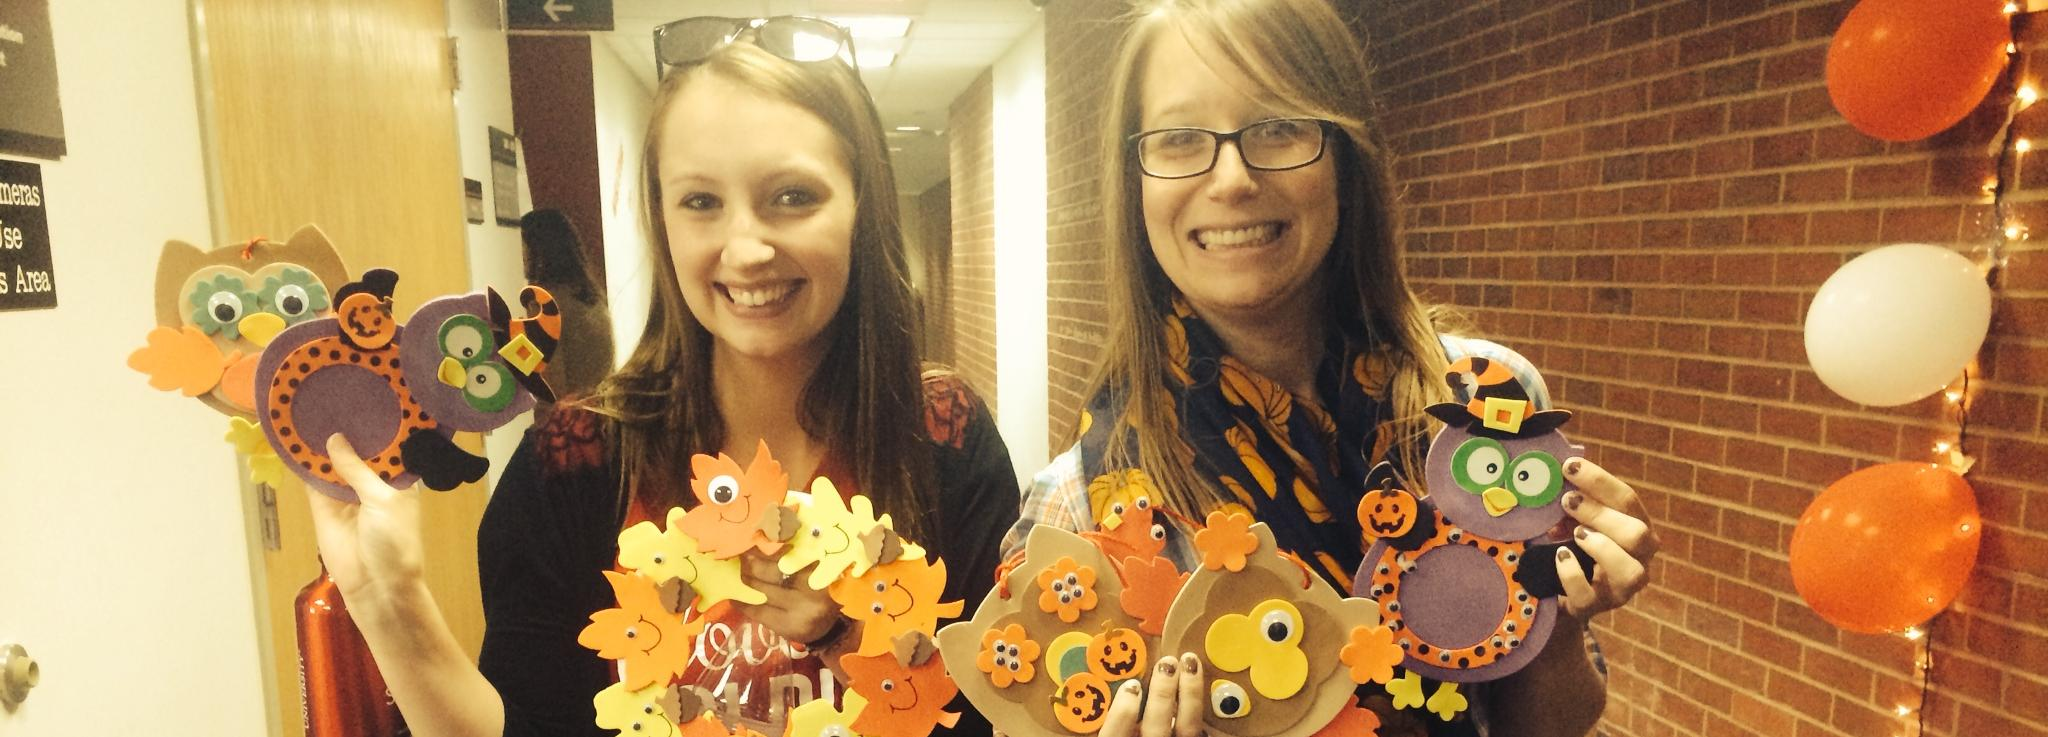 Fun craft owls at Good Neighbor event